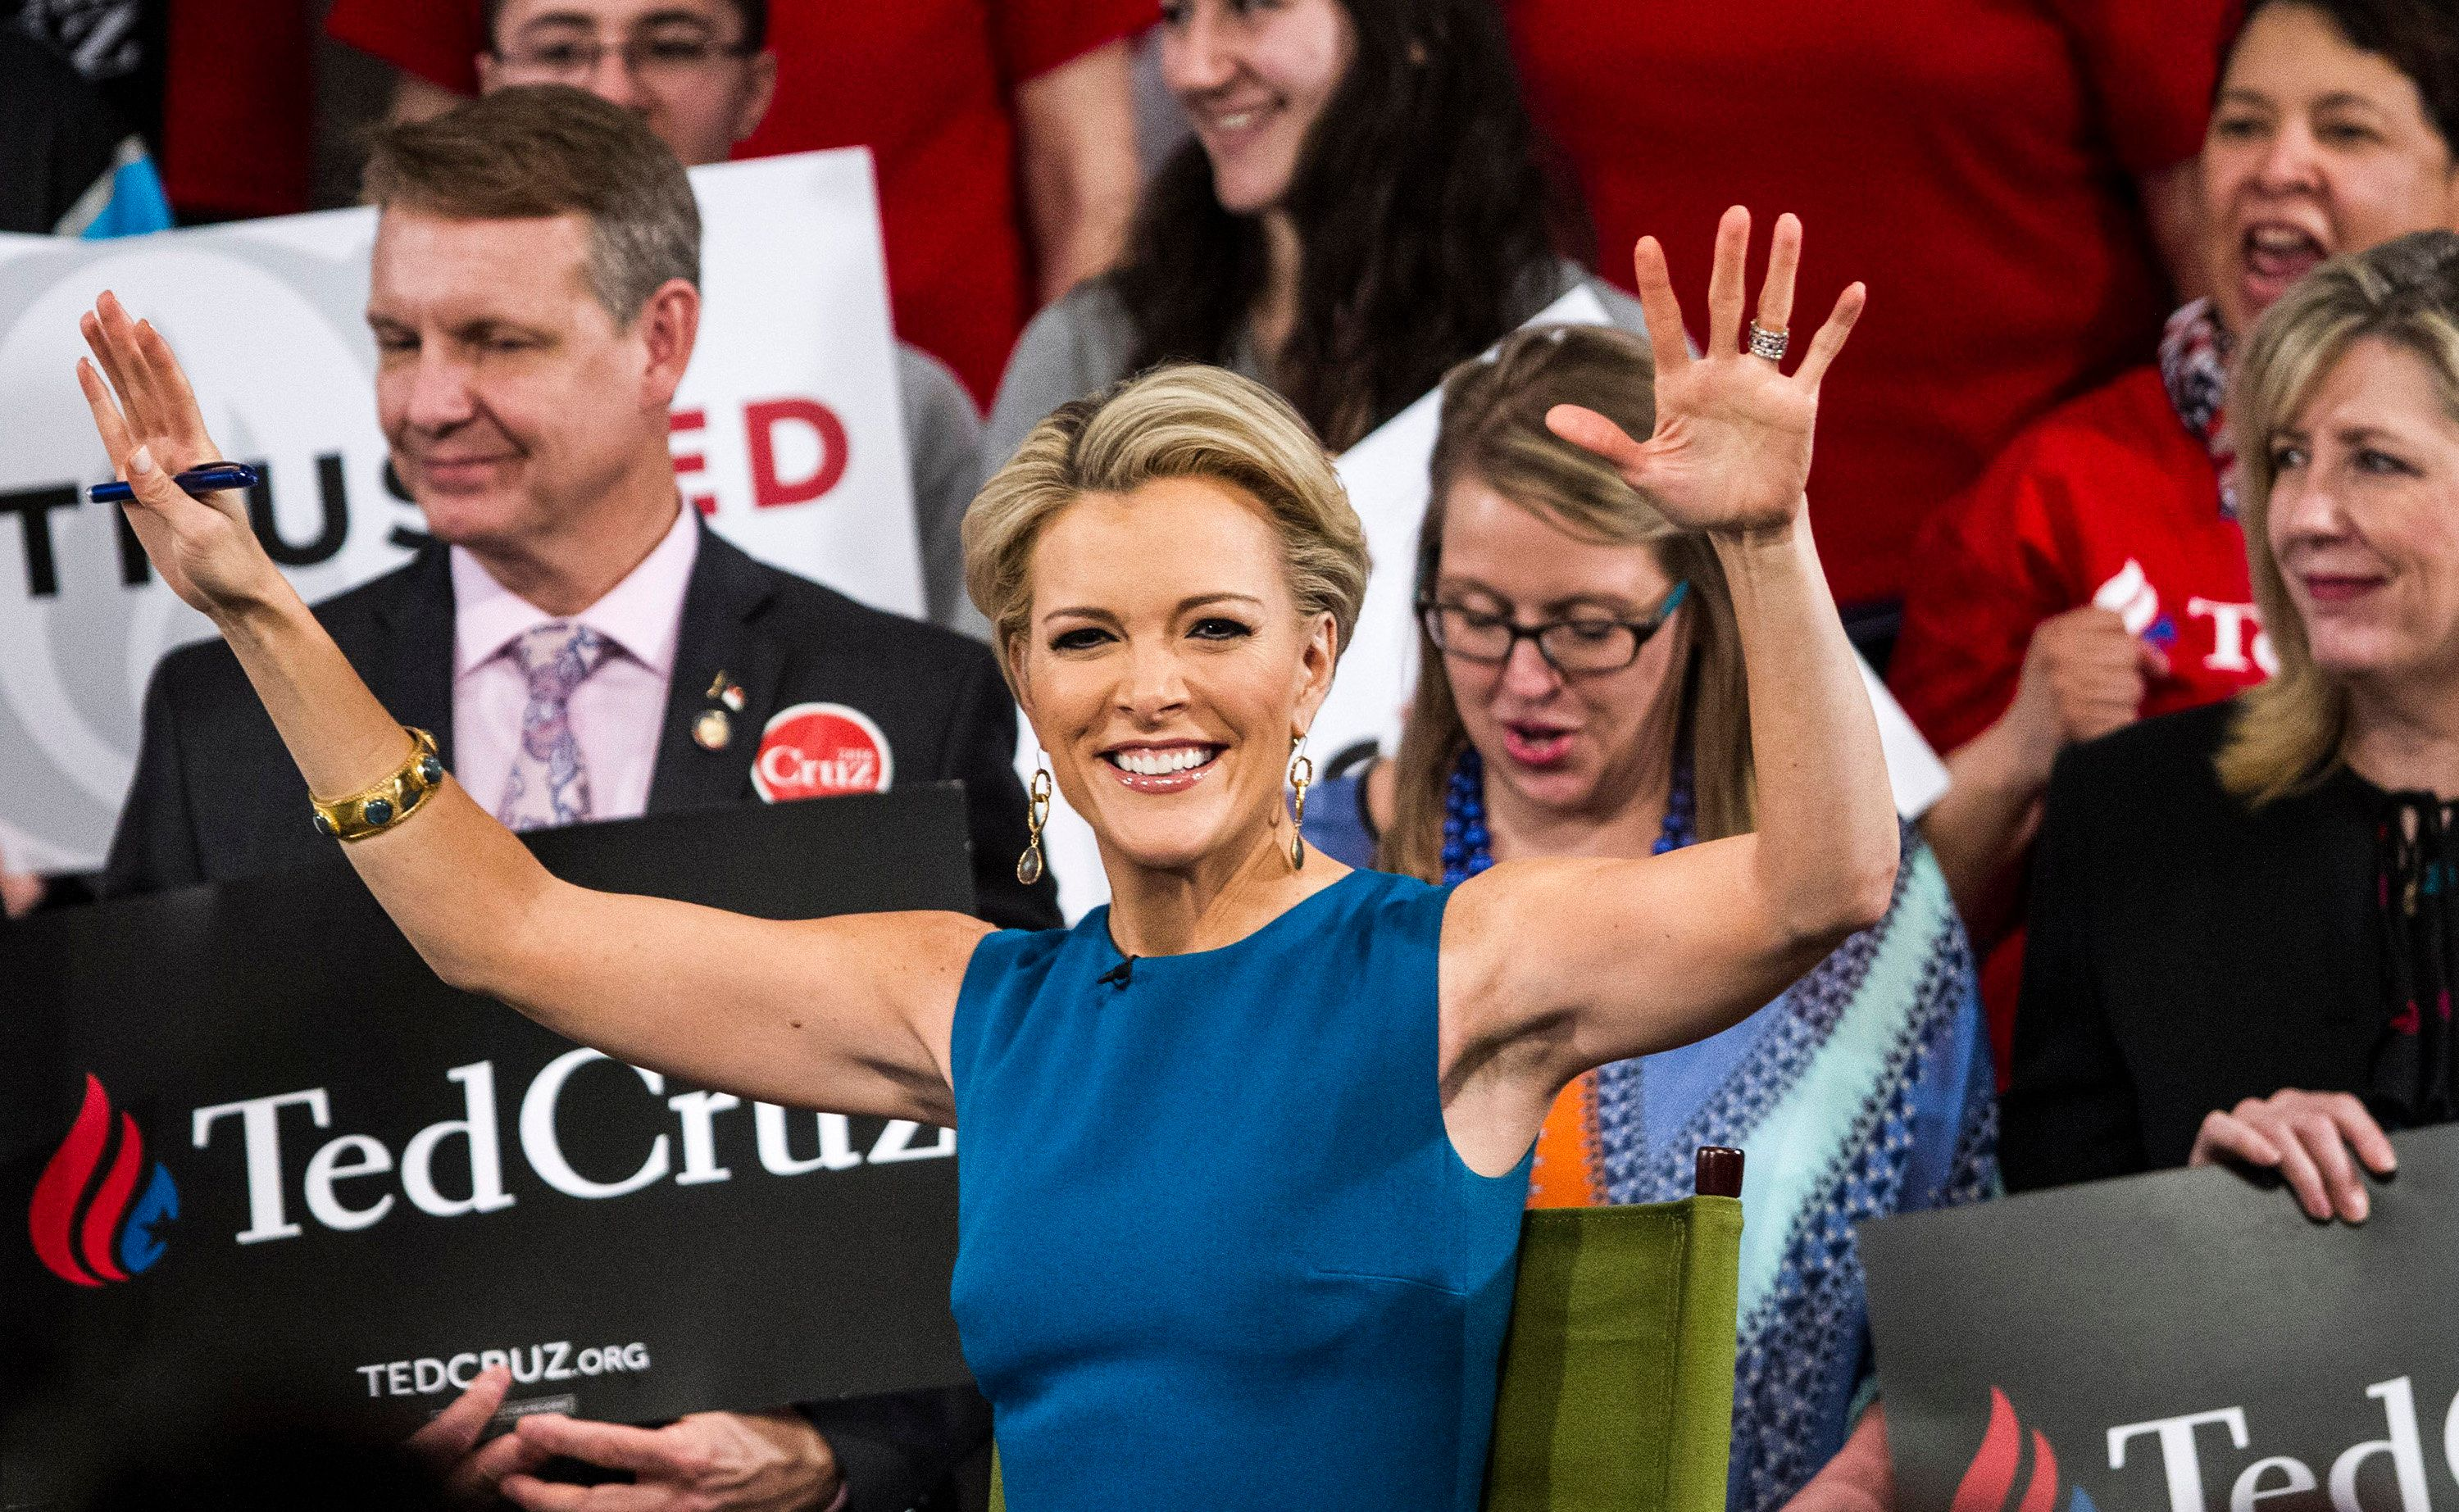 Fox News host Megyn Kelly greets the crowd before interviewing Republican presidential candidate Texas Sen. Ted Cruz on Tuesd